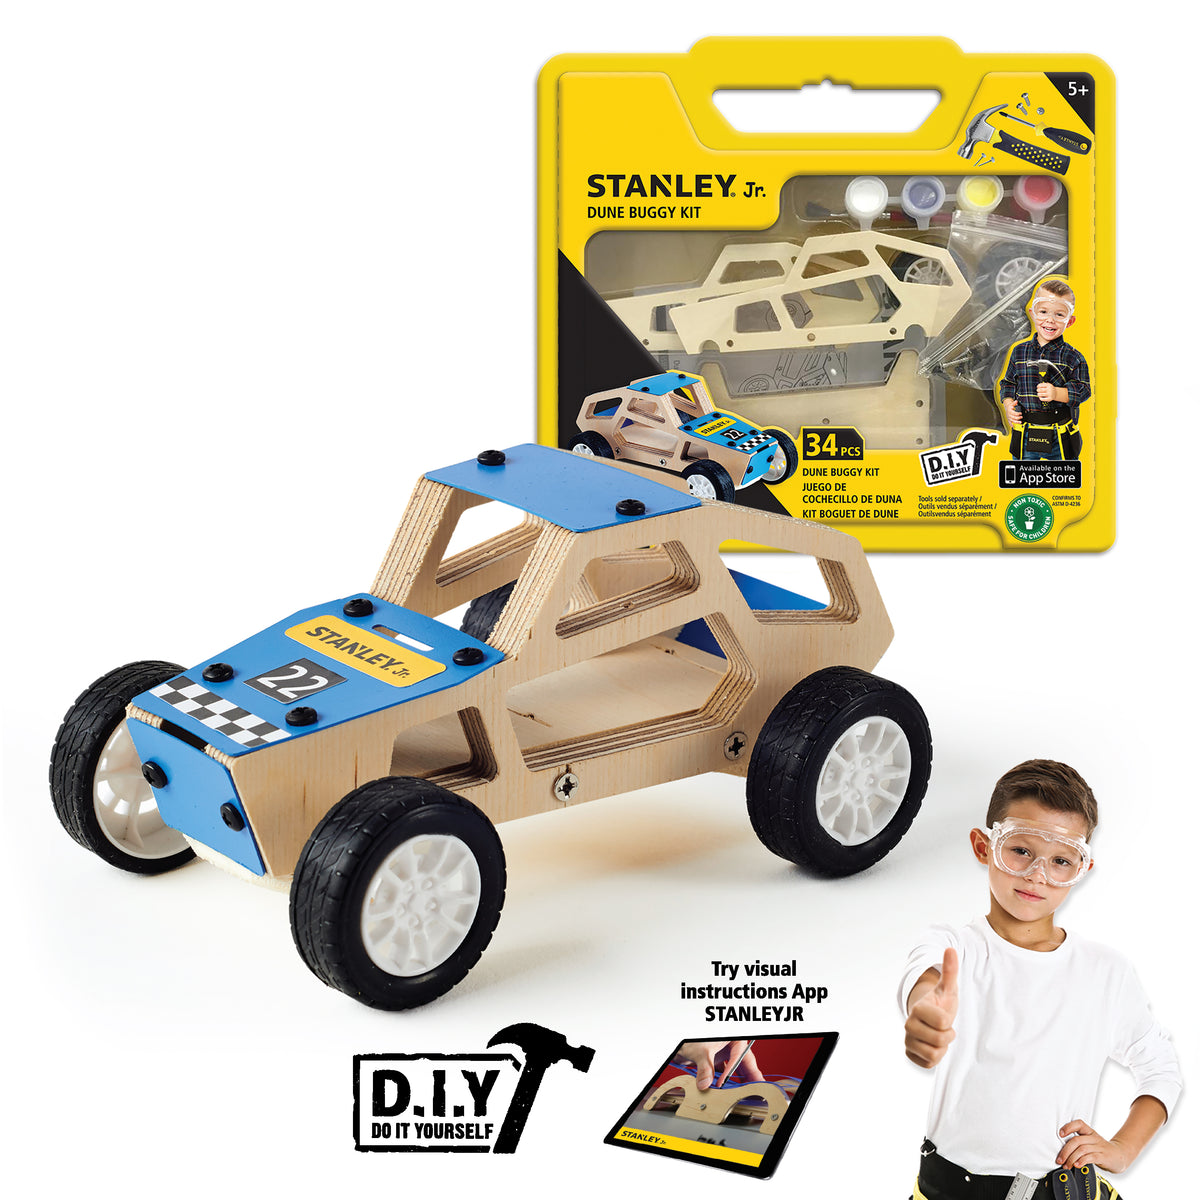 Stanley JR. Dune Buggy Kit